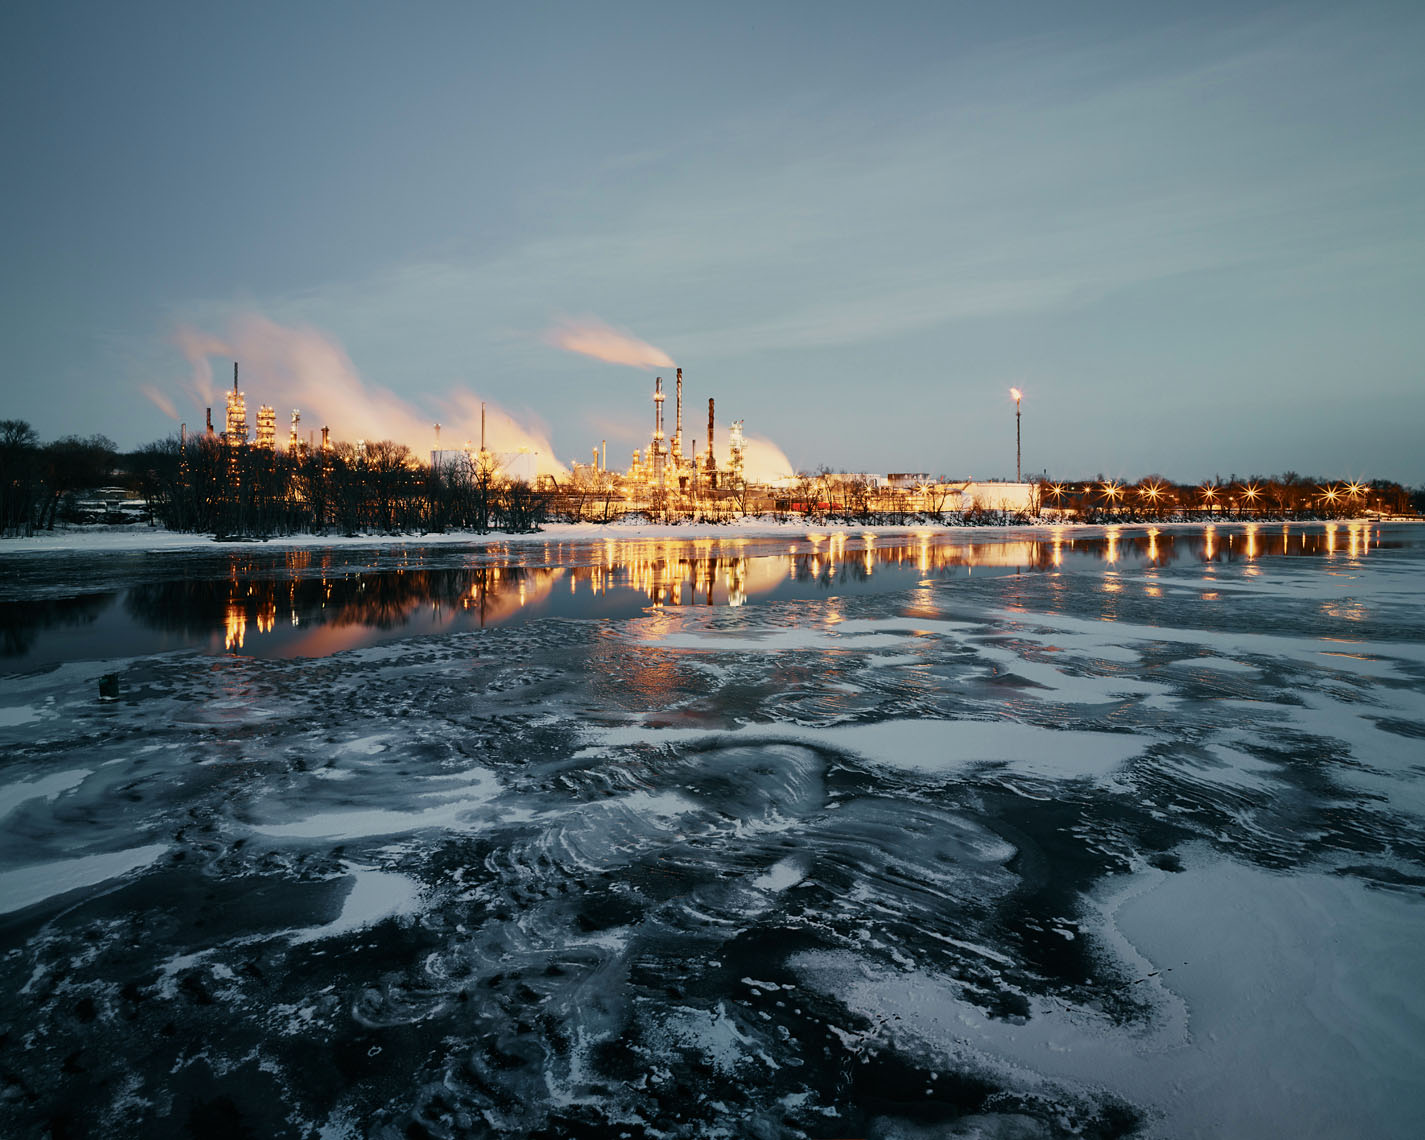 Oil refinery on the frozen Mississippi River industrial